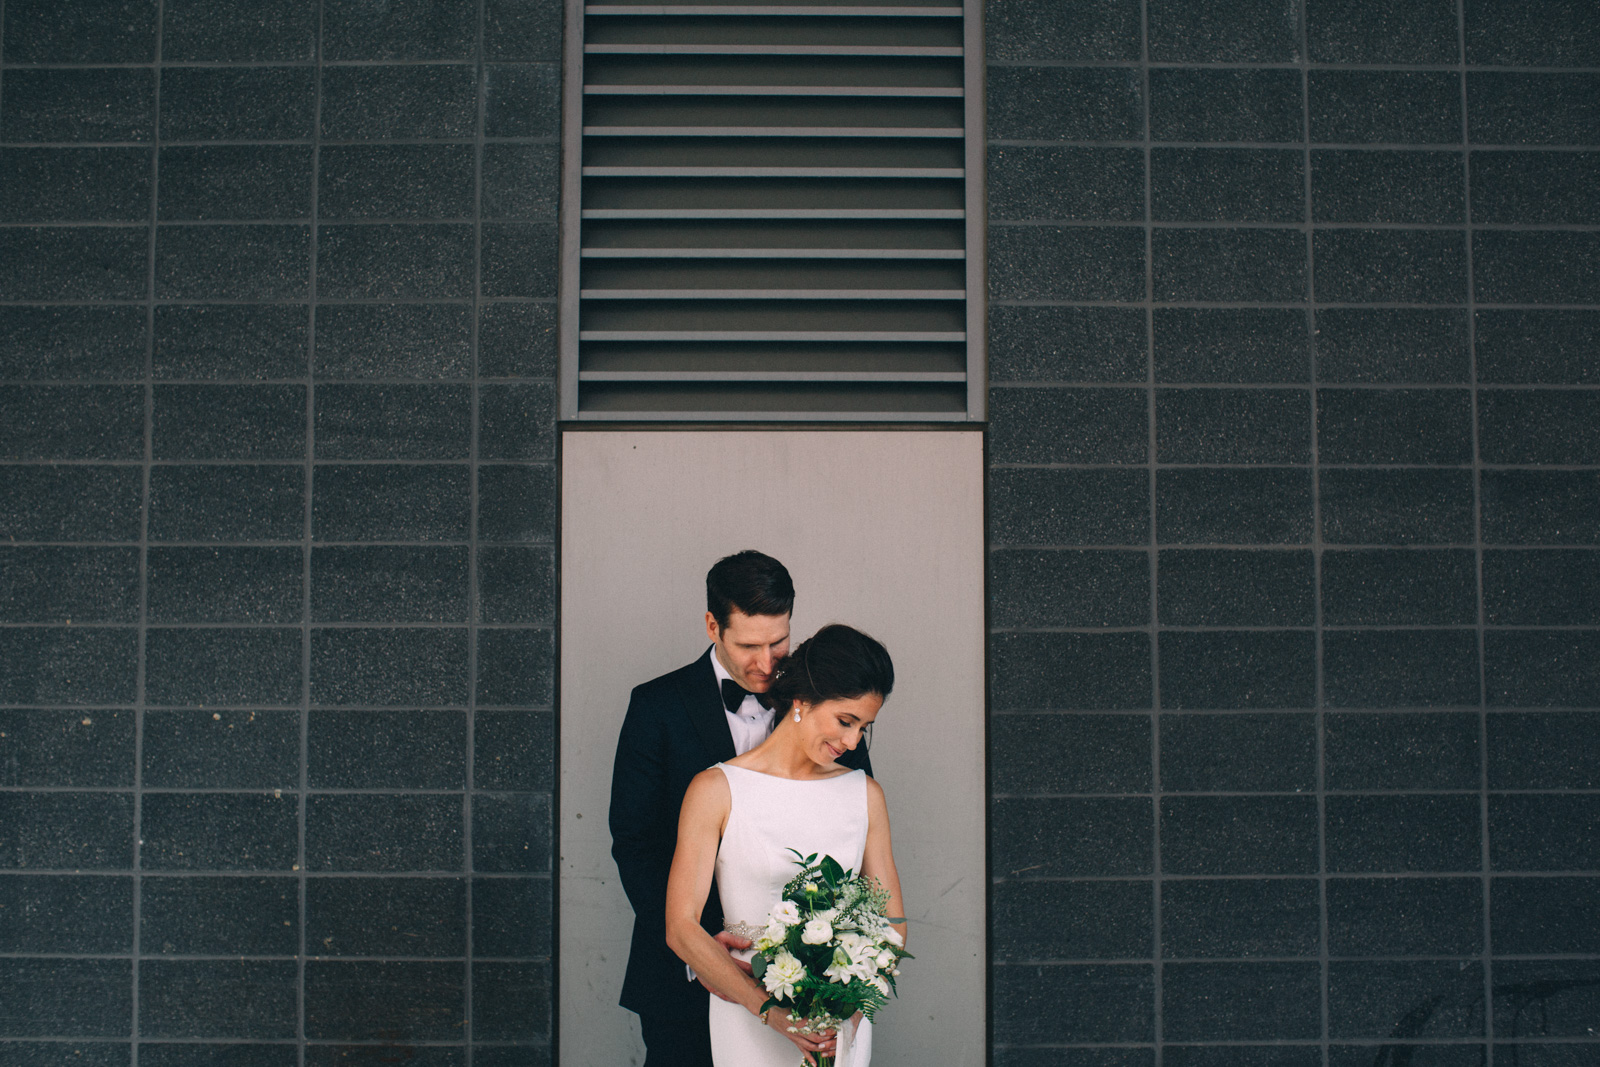 Malaparte-wedding-photography-Toronto-by-Sam-Wong-of-Visual-Cravings_40